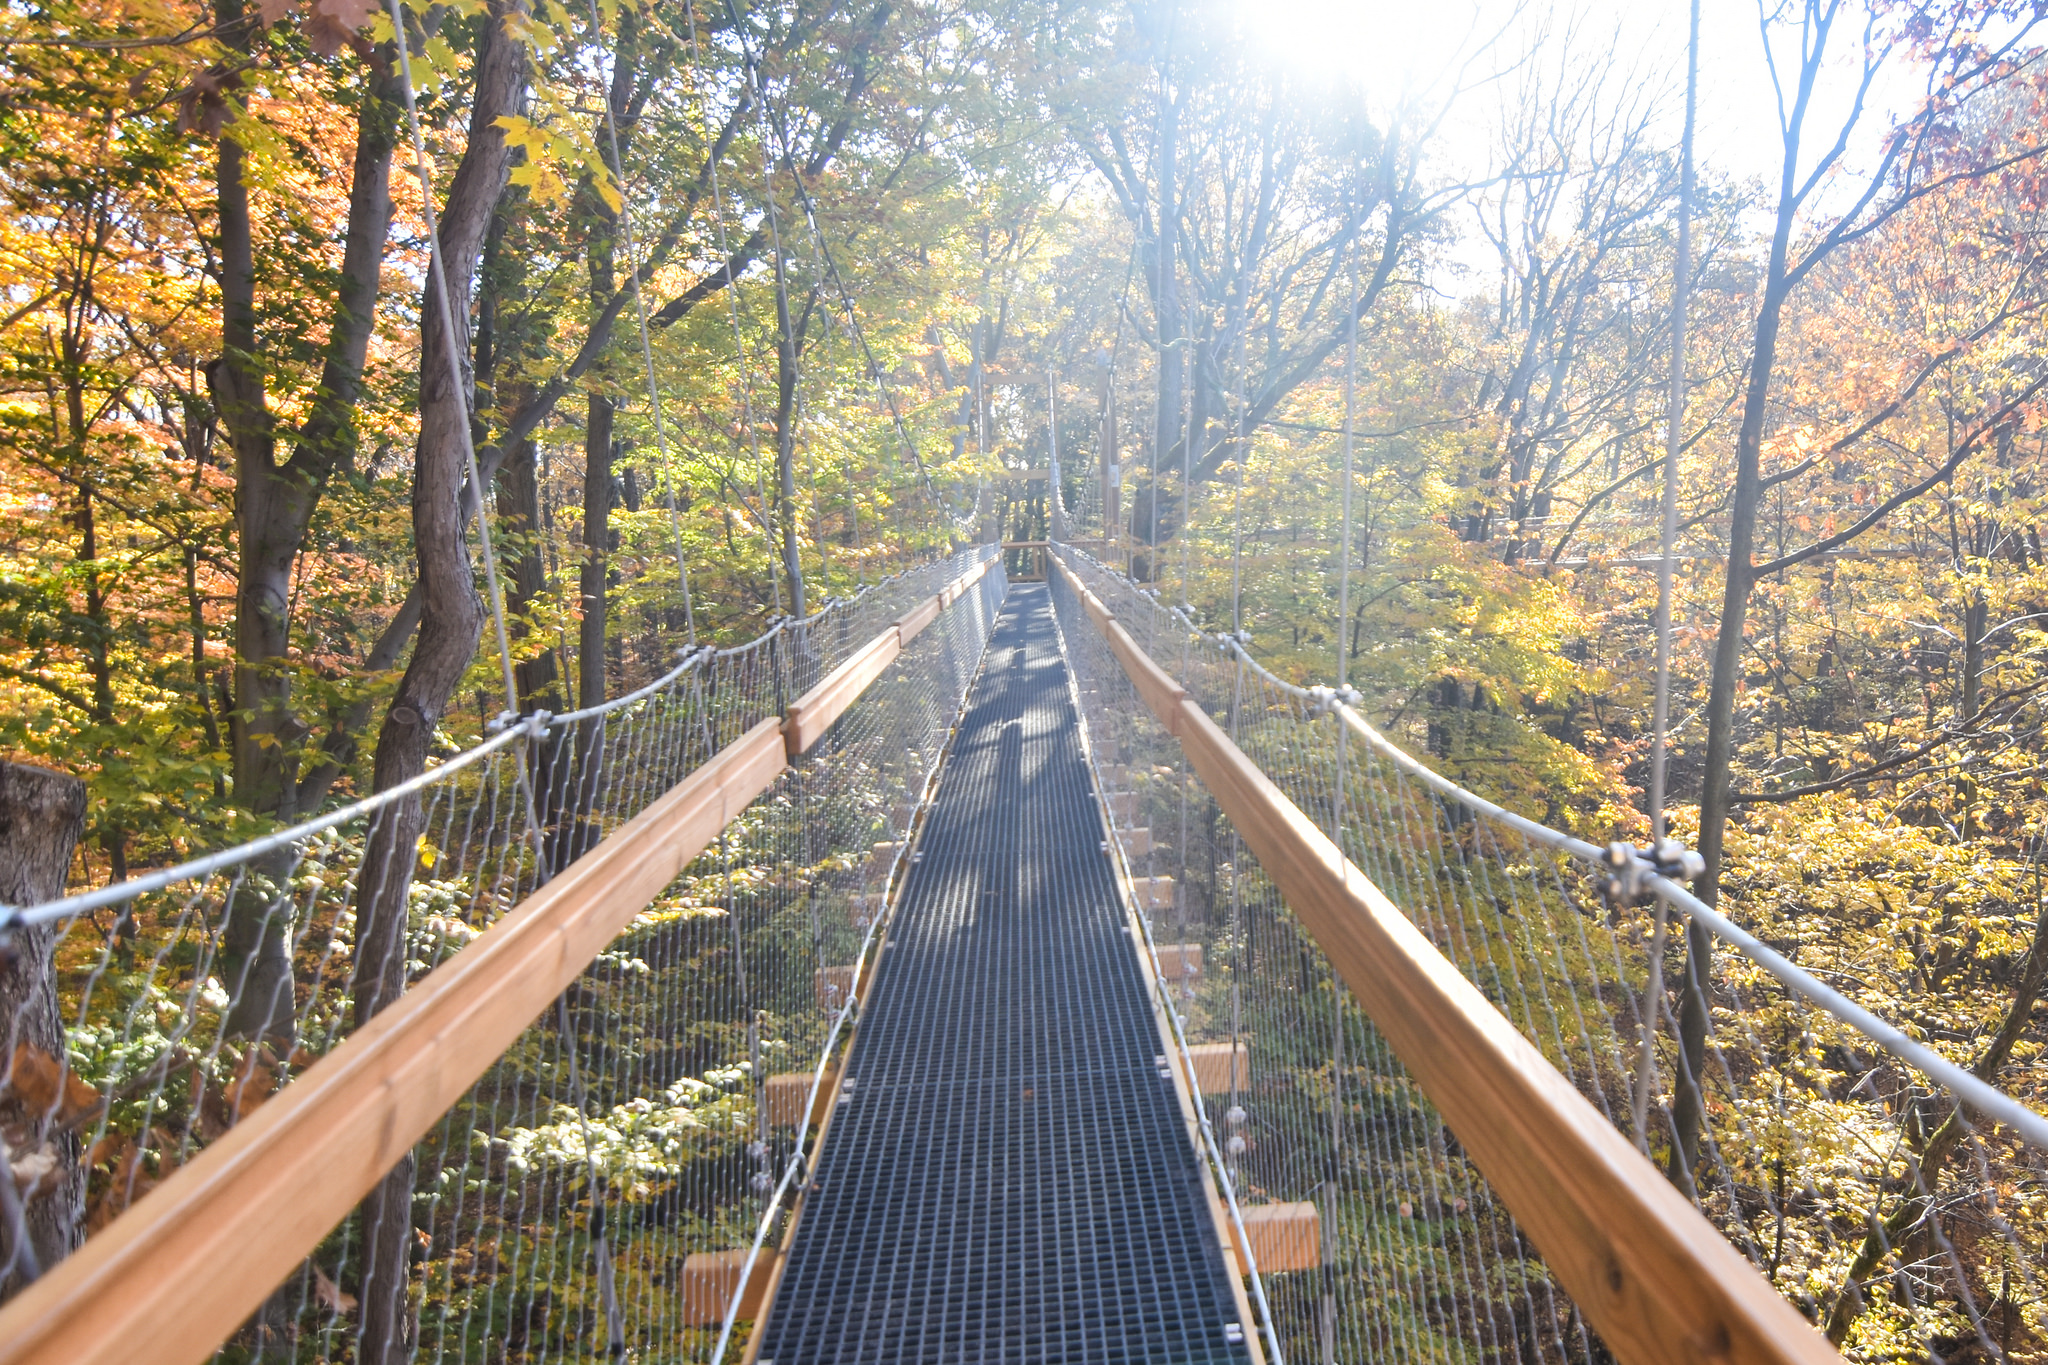 The Murch Canopy Walk At Holden Arboretum